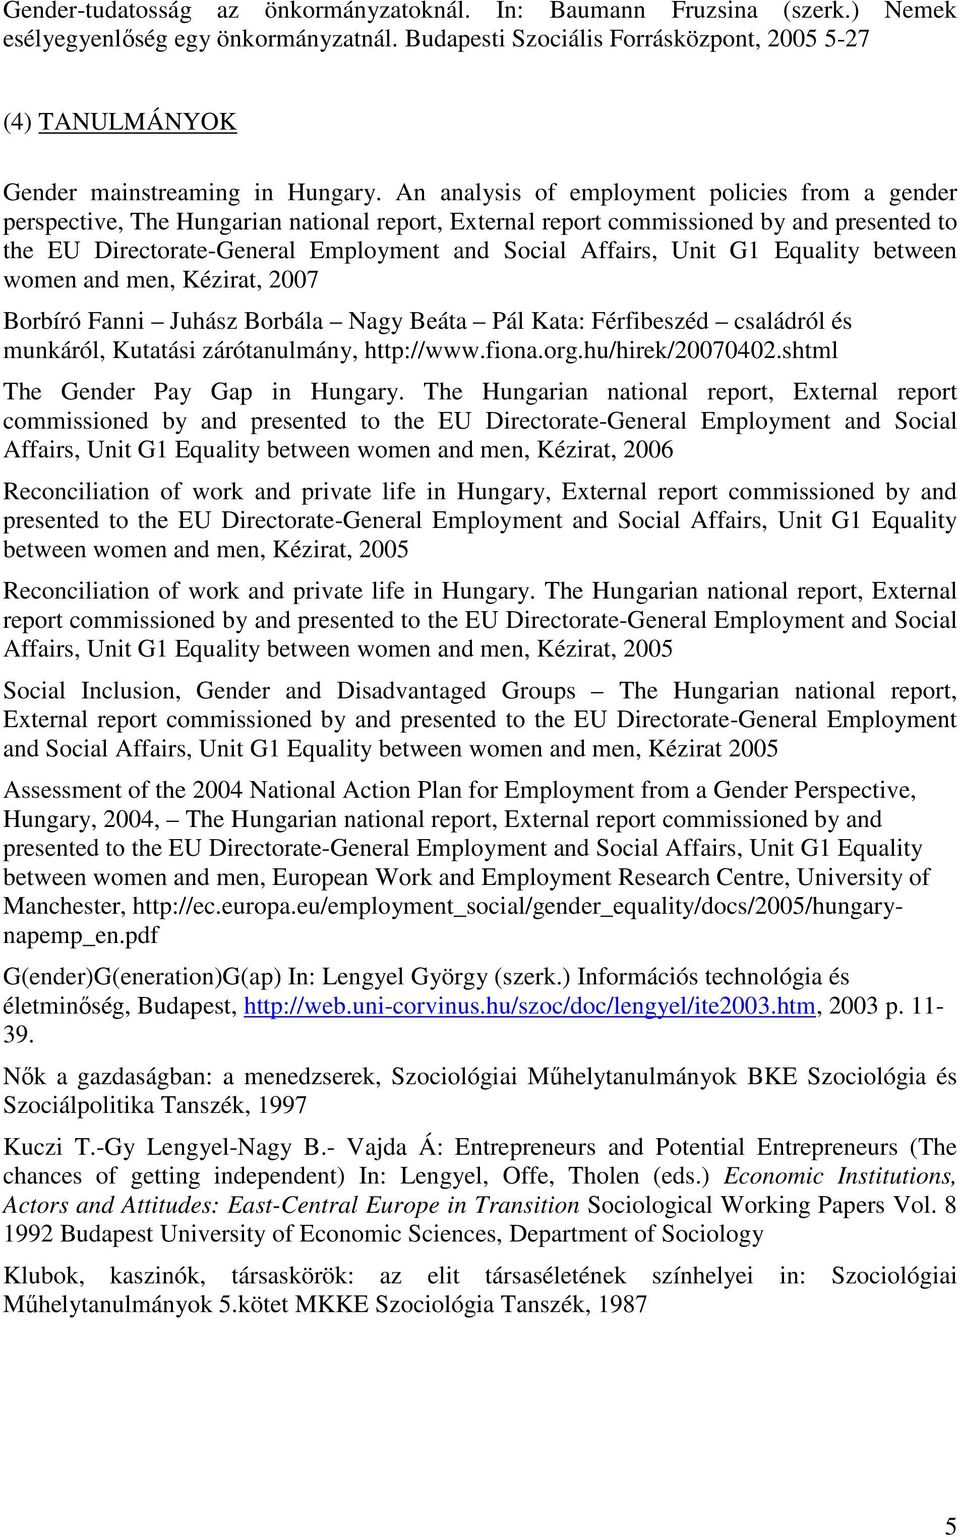 An analysis of employment policies from a gender perspective, The Hungarian national report, External report commissioned by and presented to the EU Directorate-General Employment and Social Affairs,